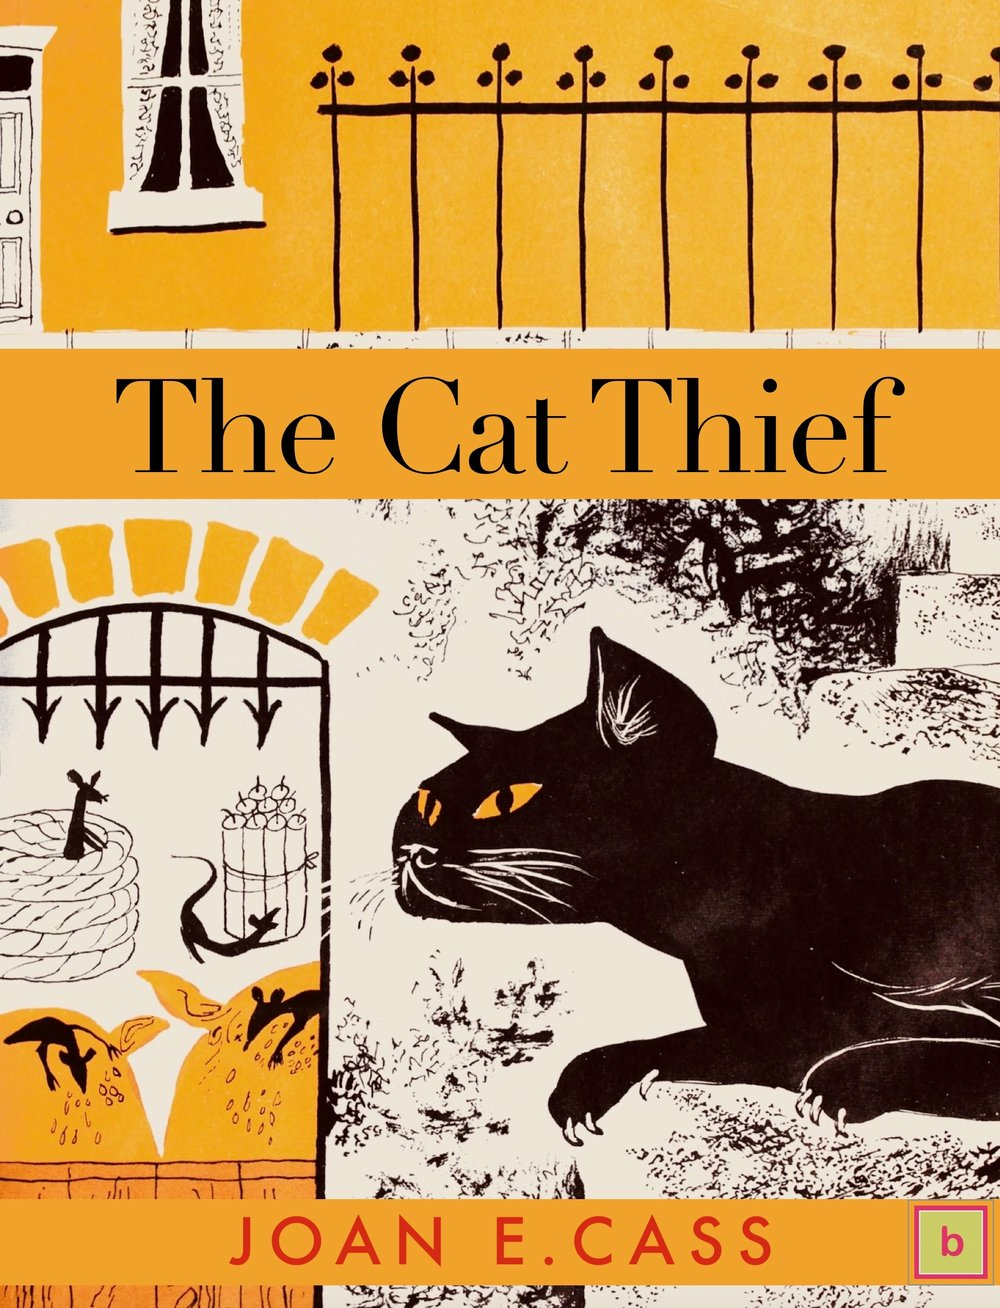 The Cat Thief